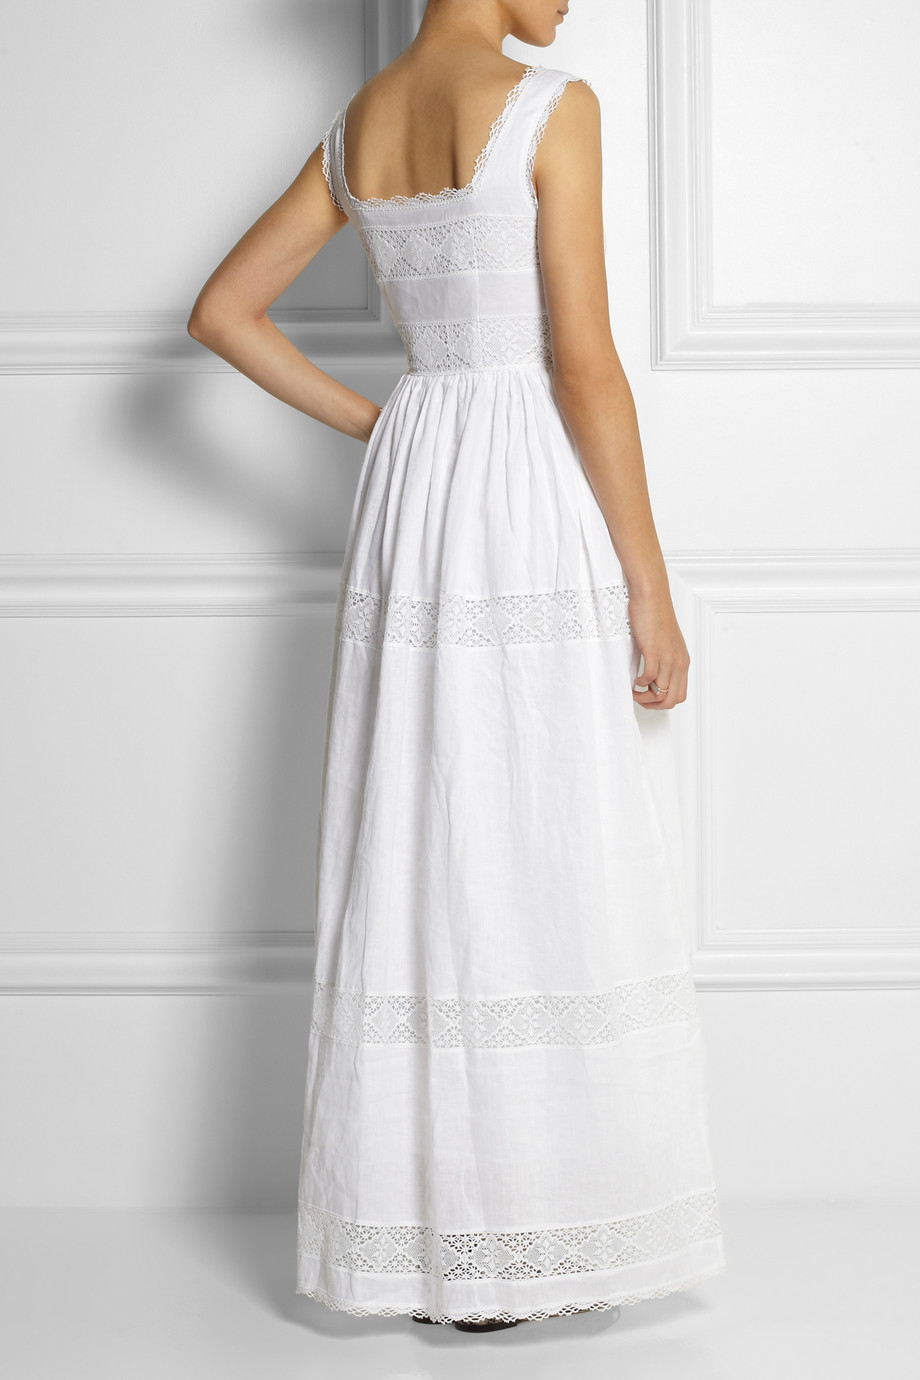 Collette By Collette Dinnigan Taormina Linen And Lace Maxi